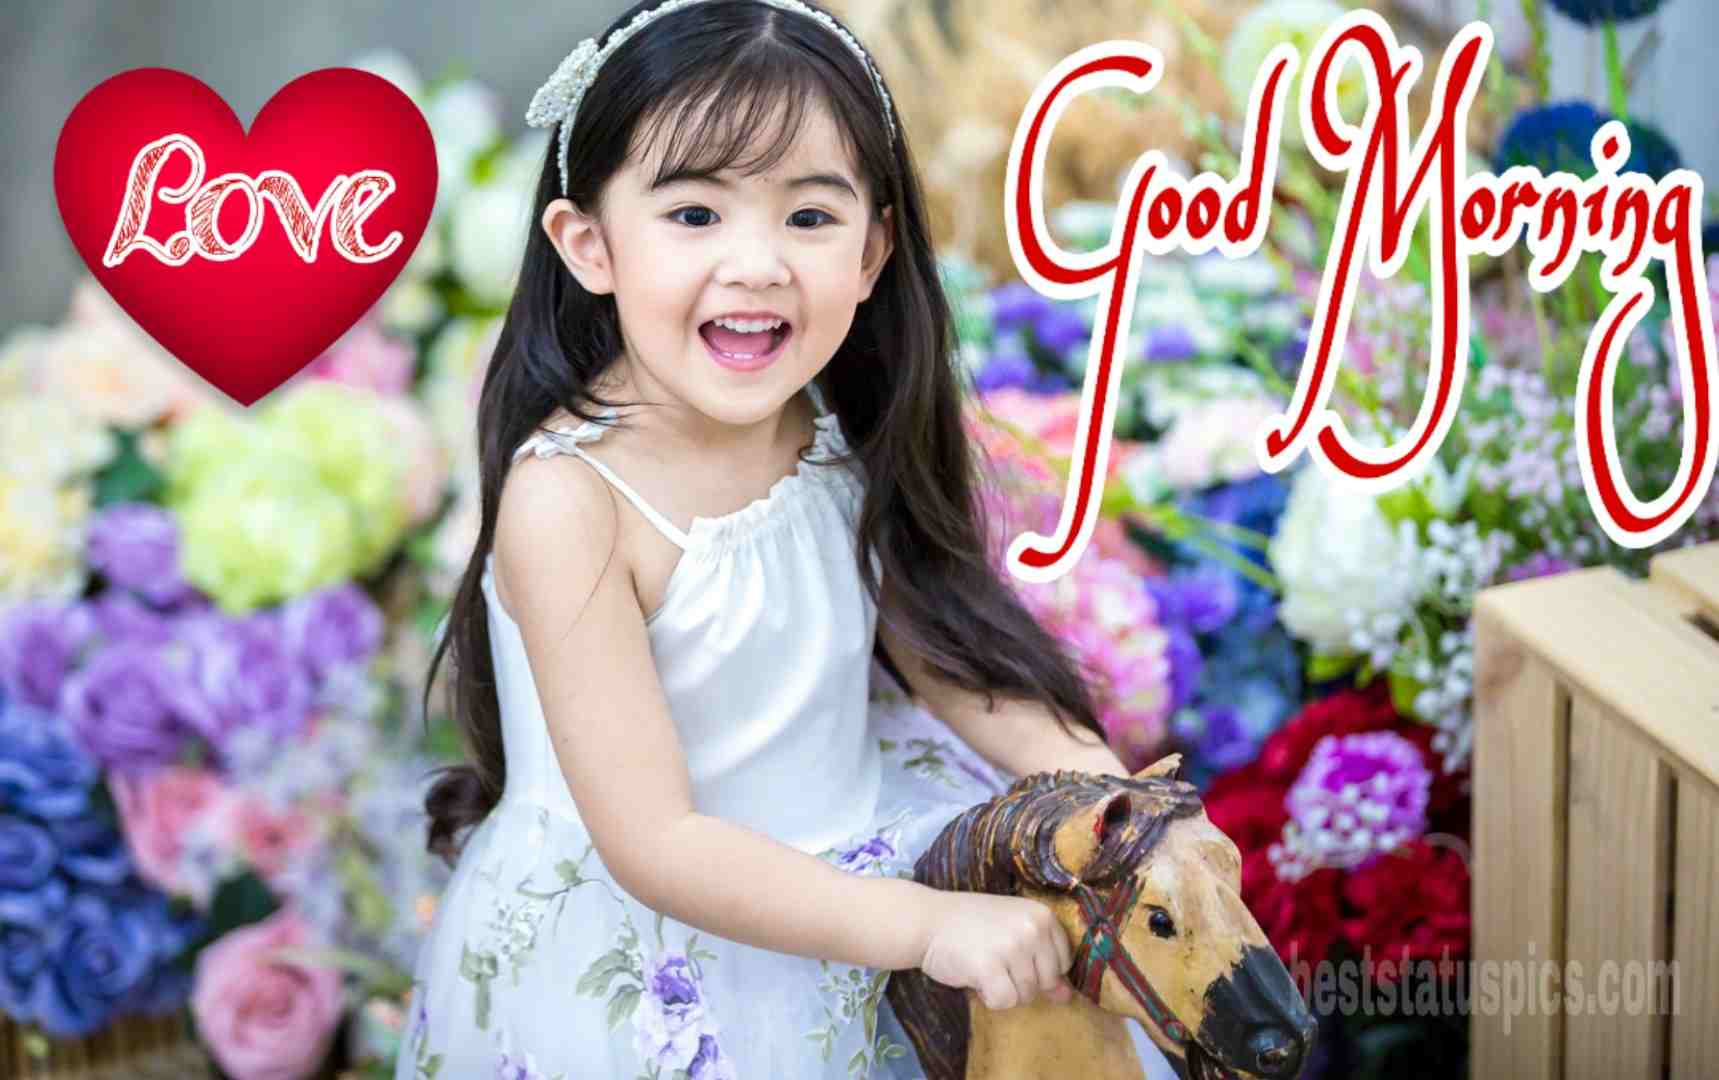 Good morning baby girl with love heart image